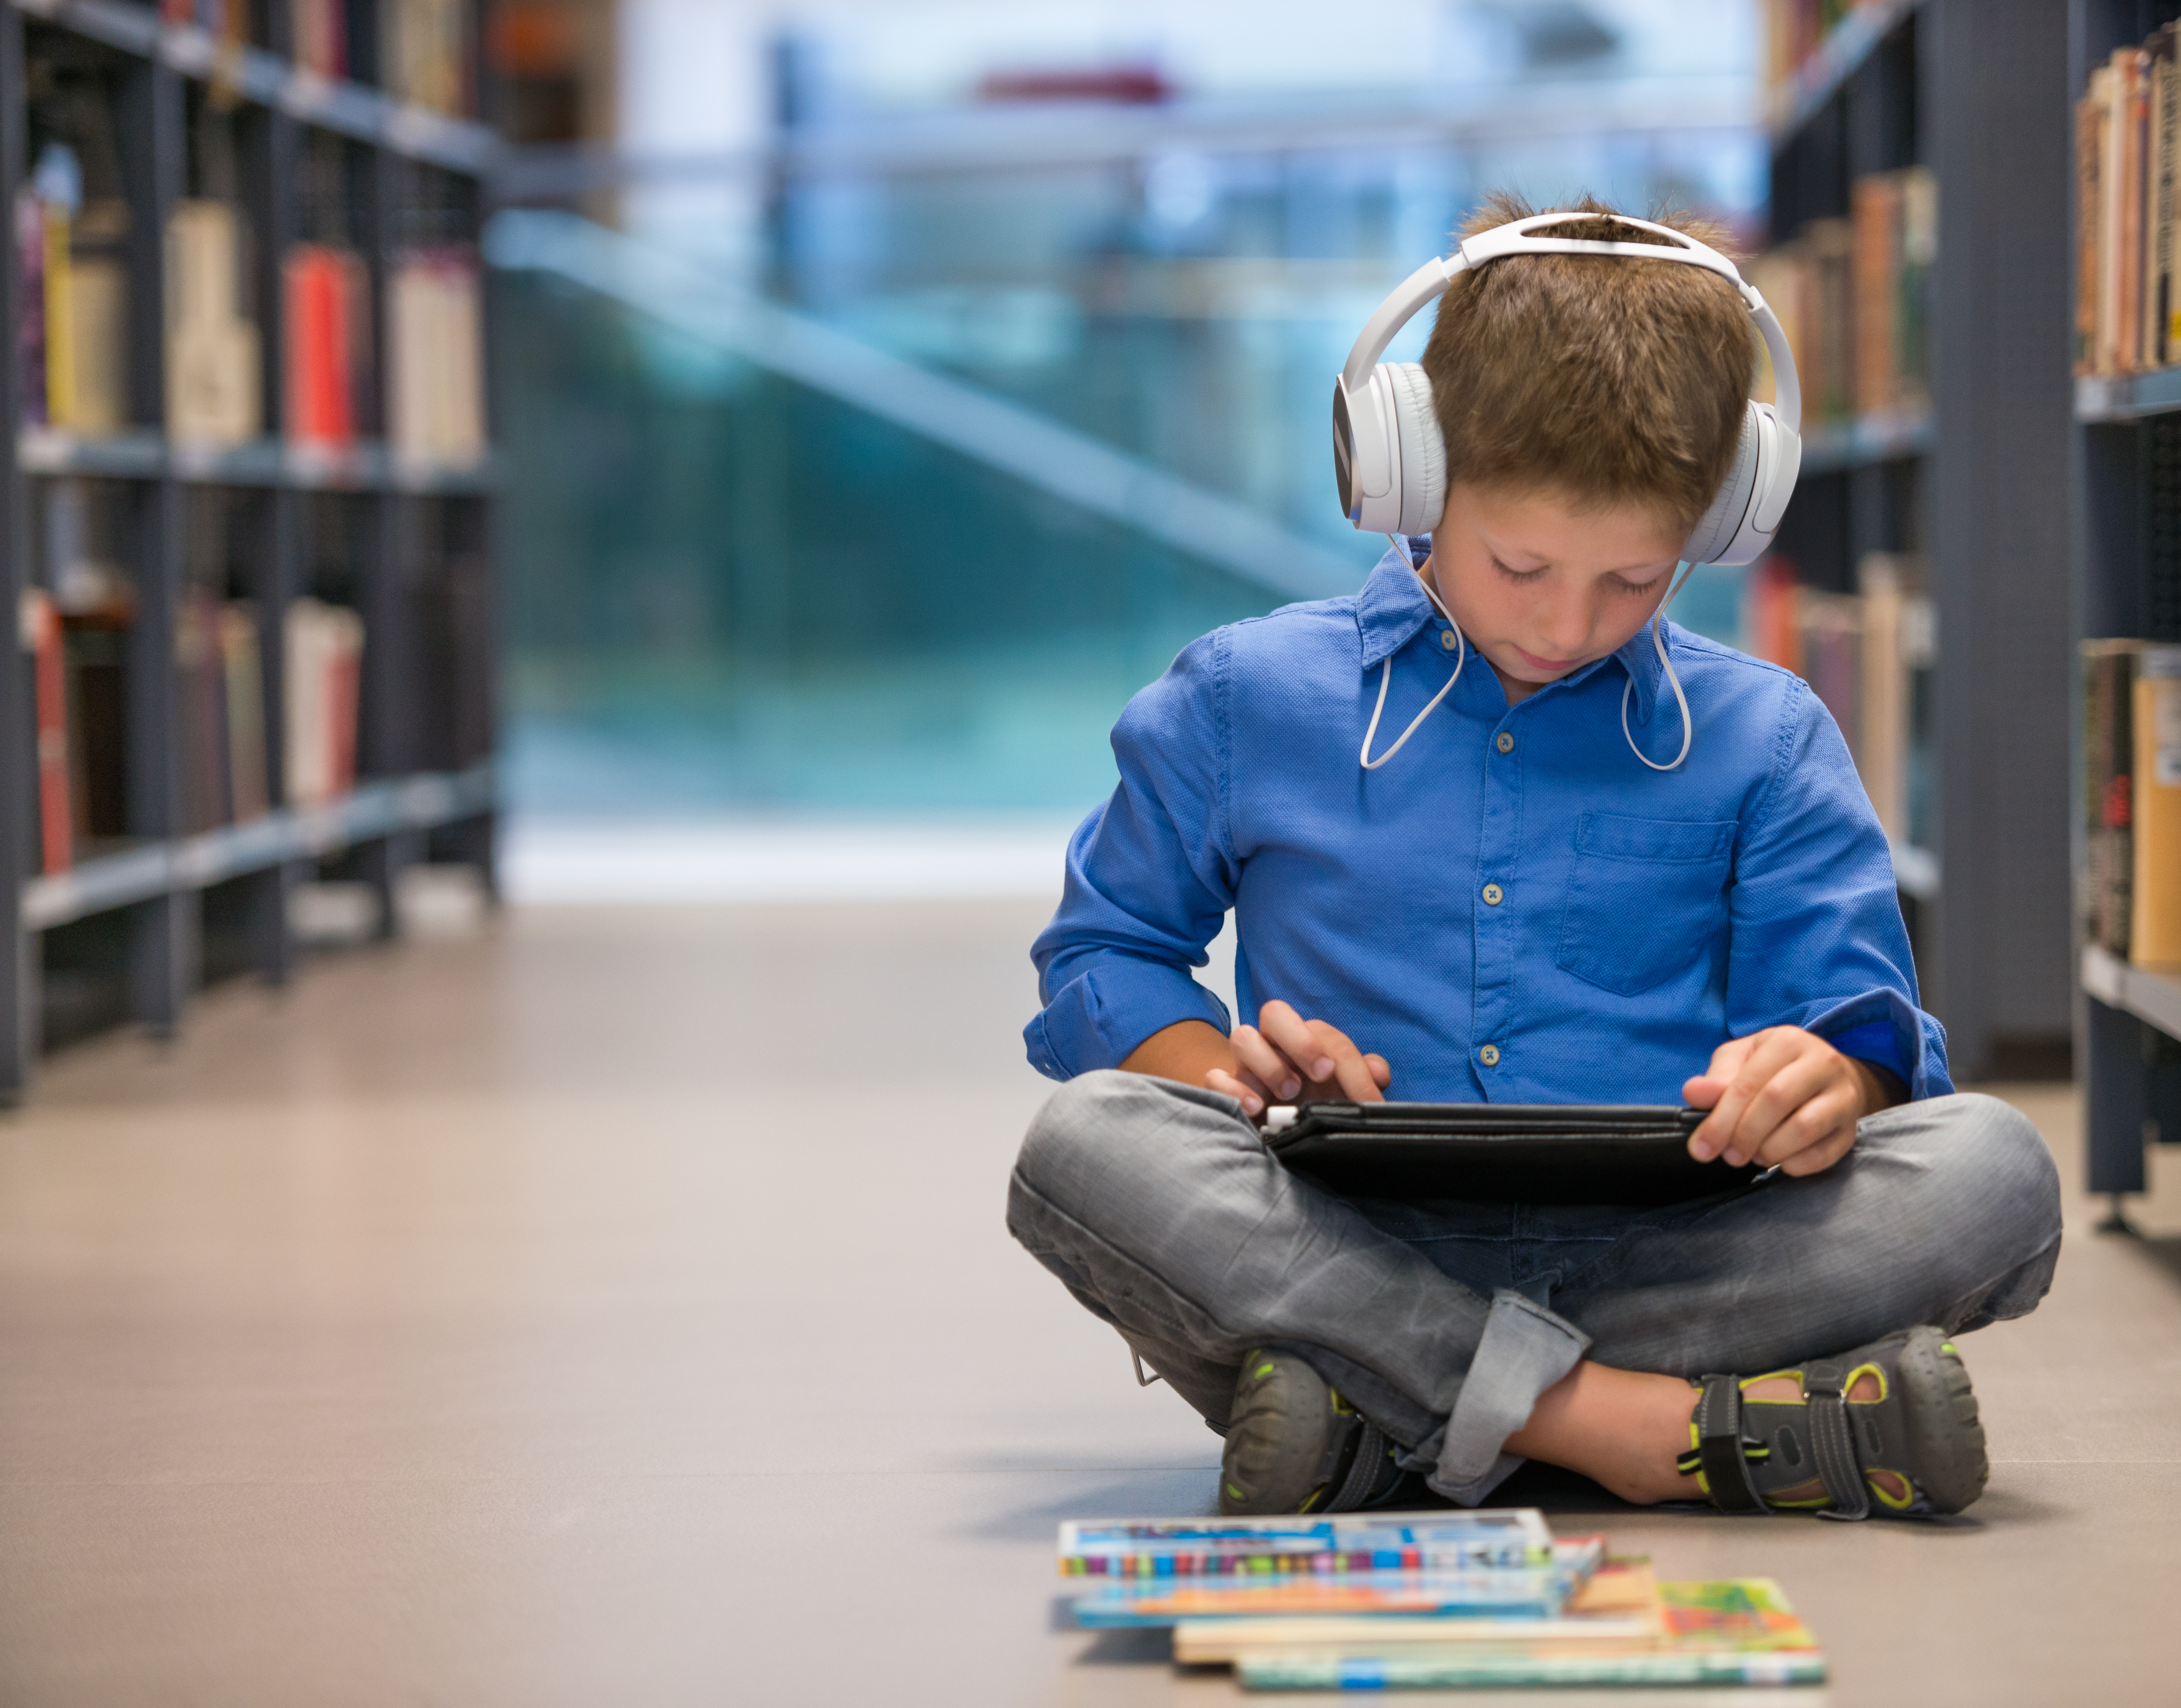 Schoolboy with headphones and tablet computer sitting on library floor.